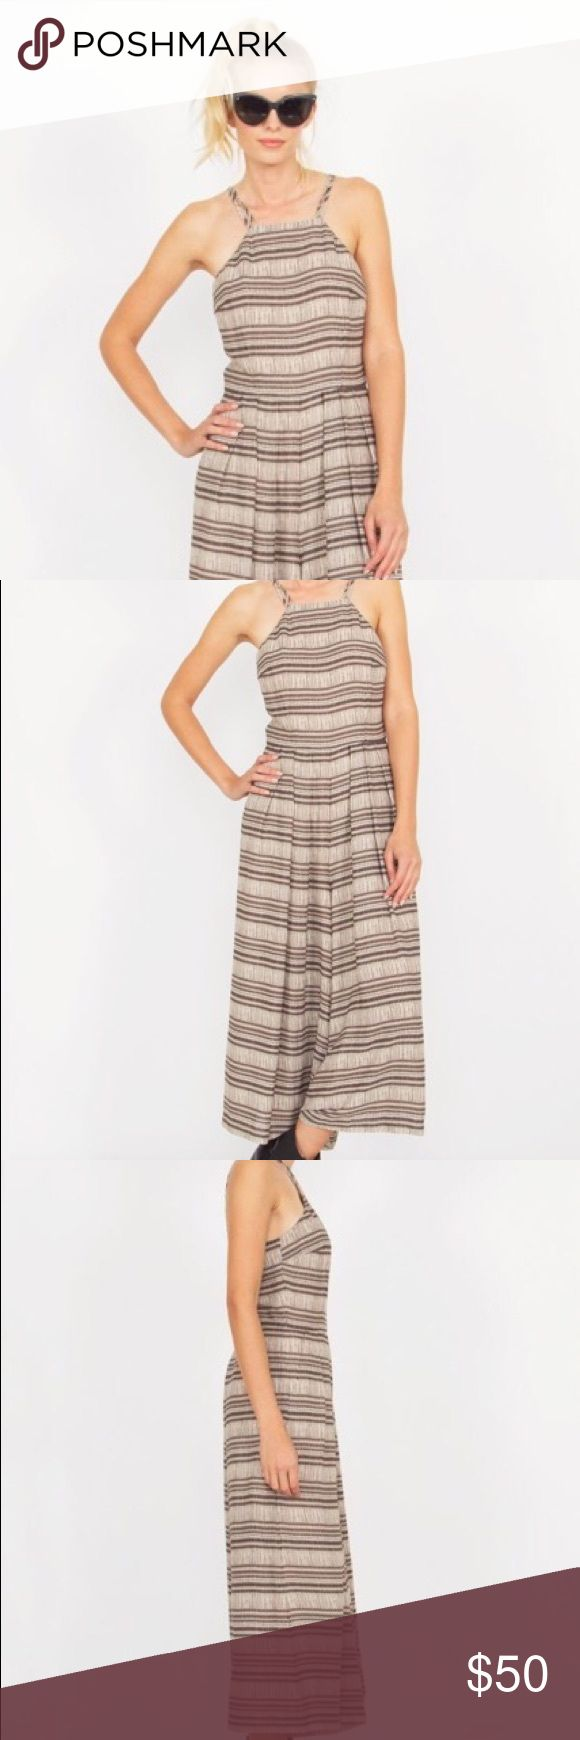 URBAN BOHO SUMMER CULOTTES FESTIVAL JUMPSUIT Makes a statement in this cute jumpsuit. Features square neckline and spaghetti straps Invisible zipper. Brad new with tags. Great summer colors light and summer perfect small and medium Sugar Lips Pants Jumpsuits & Rompers